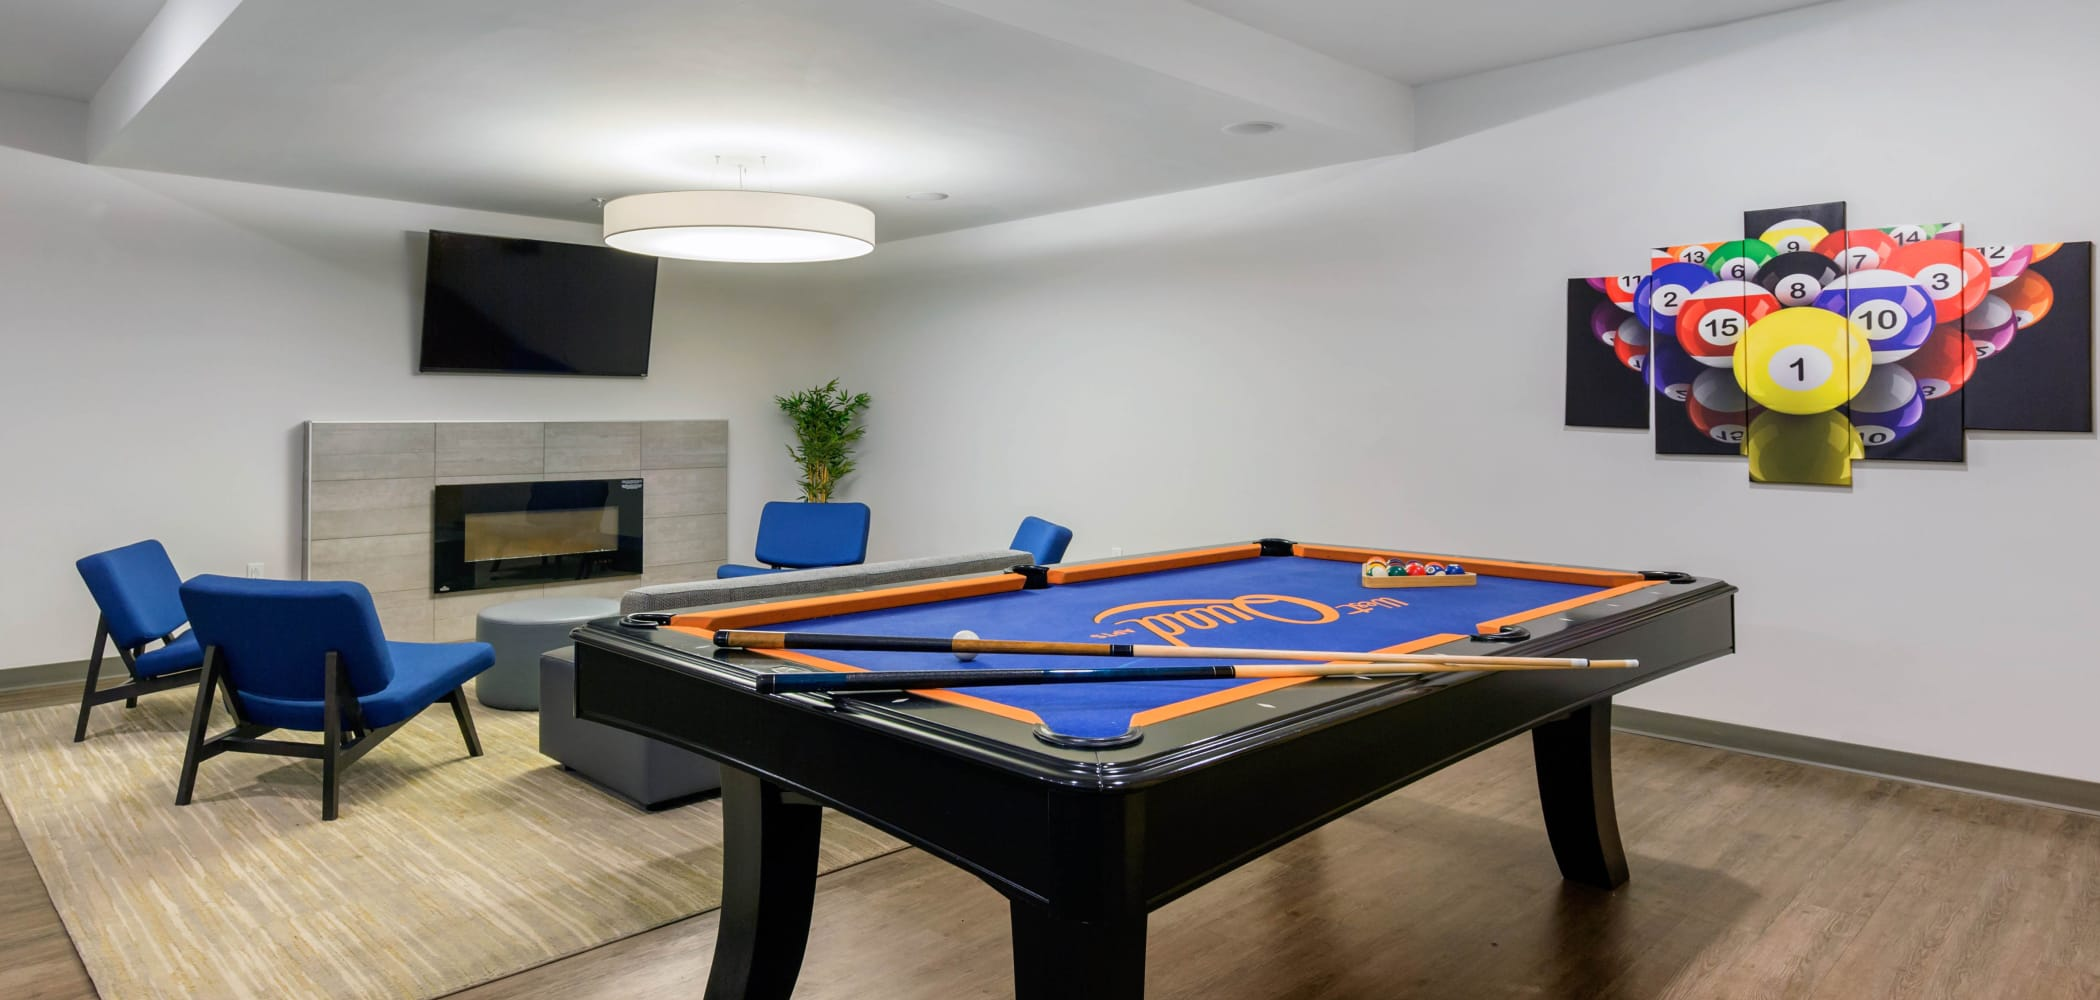 Game room at West Quad in Champaign, Illinois